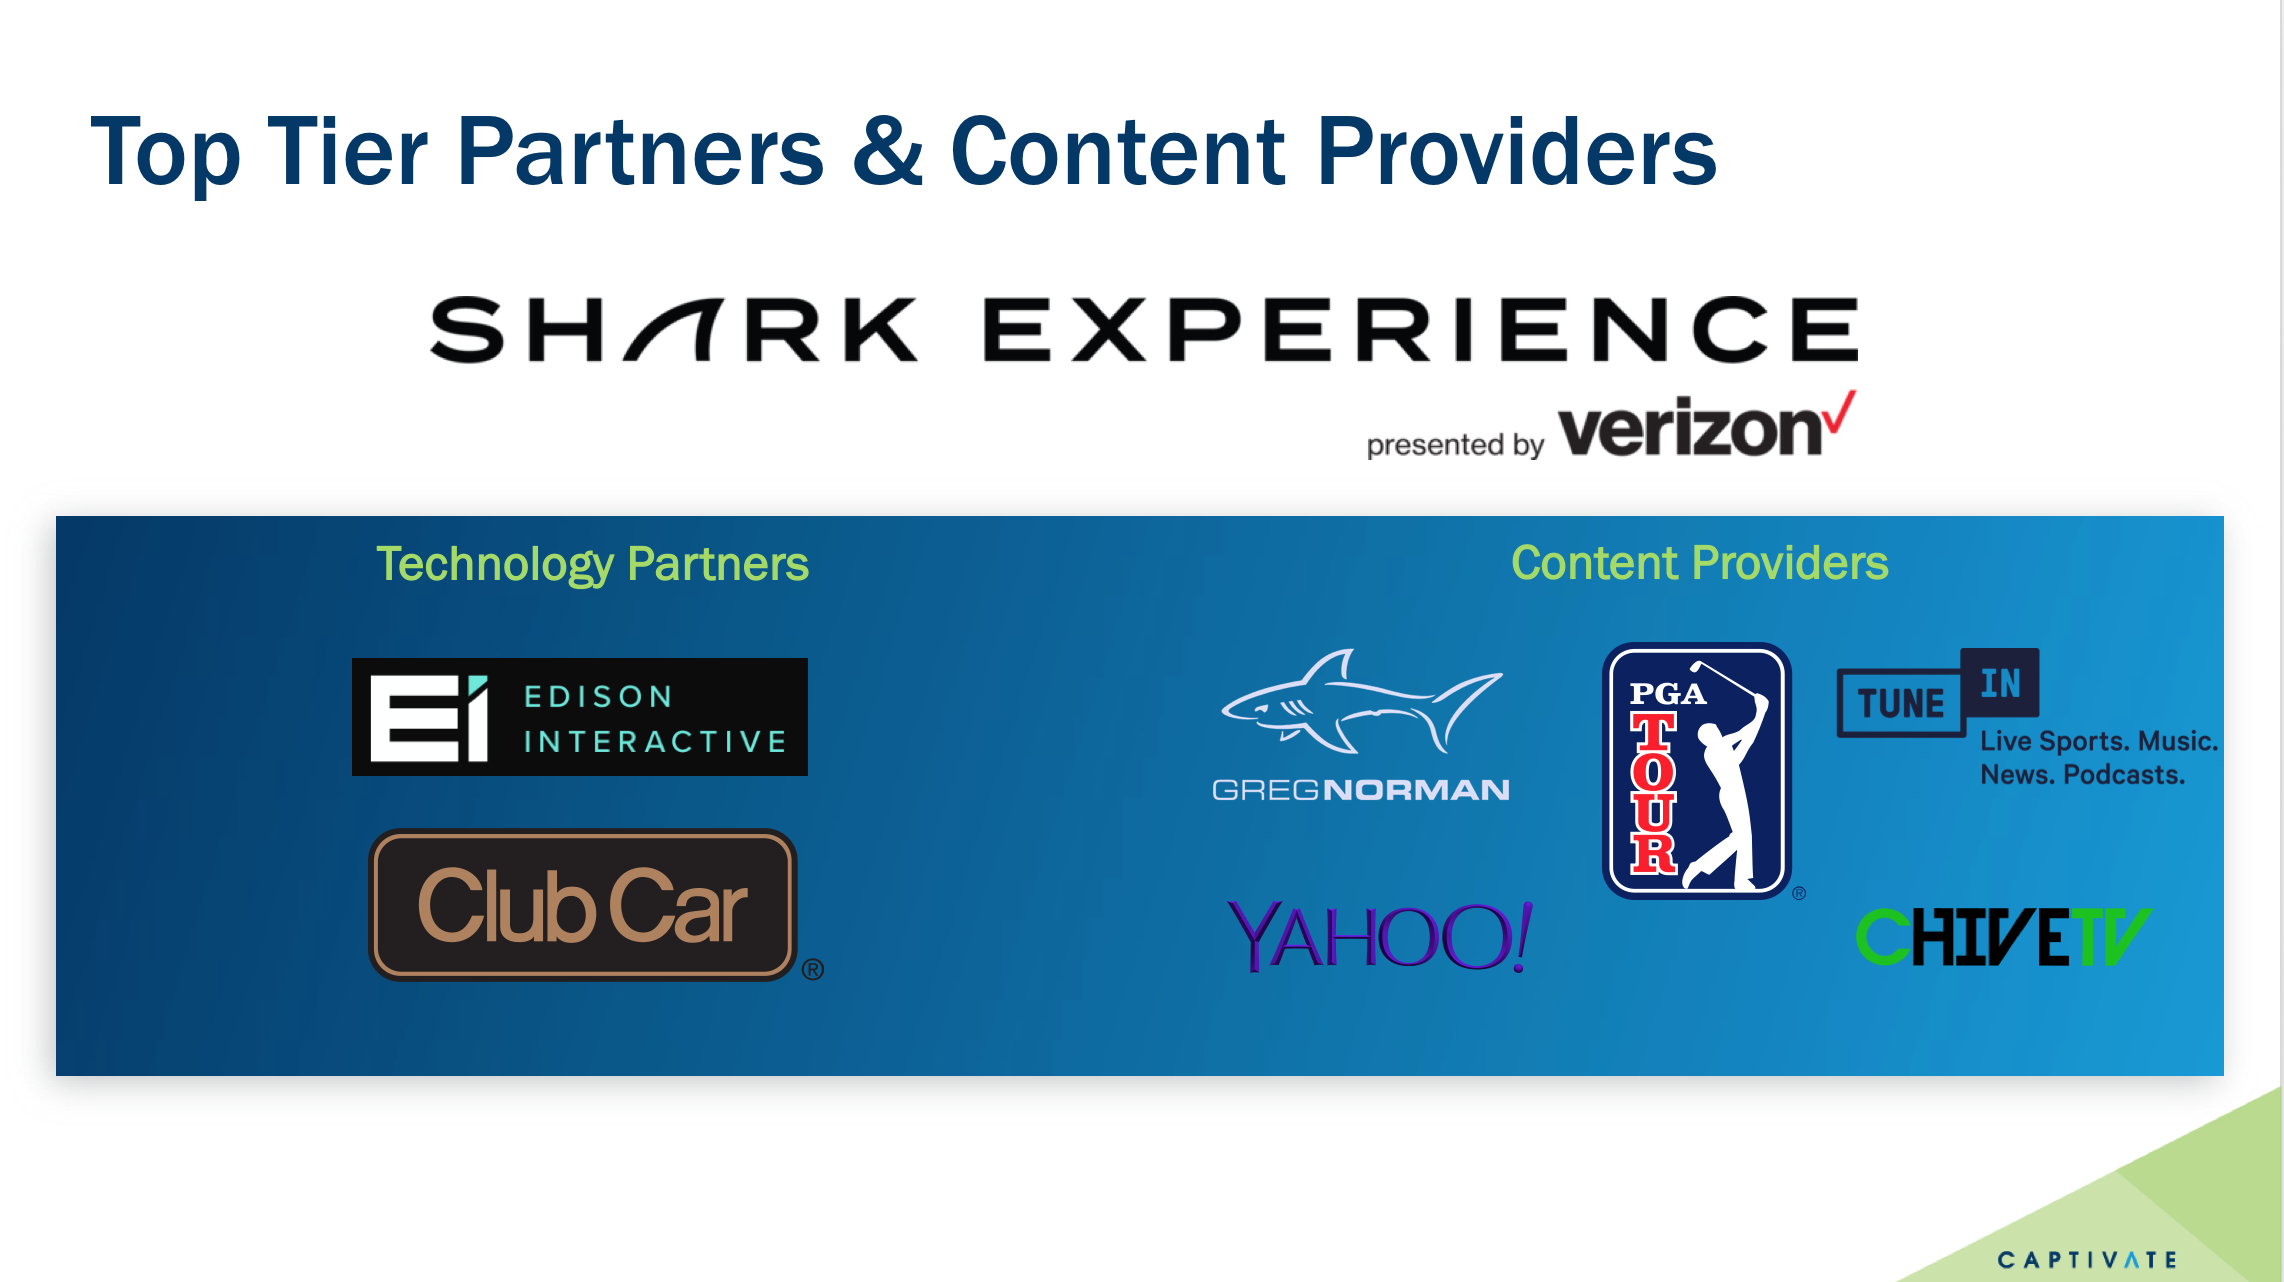 Captivate GOLF - Shark Experience Presented by Version